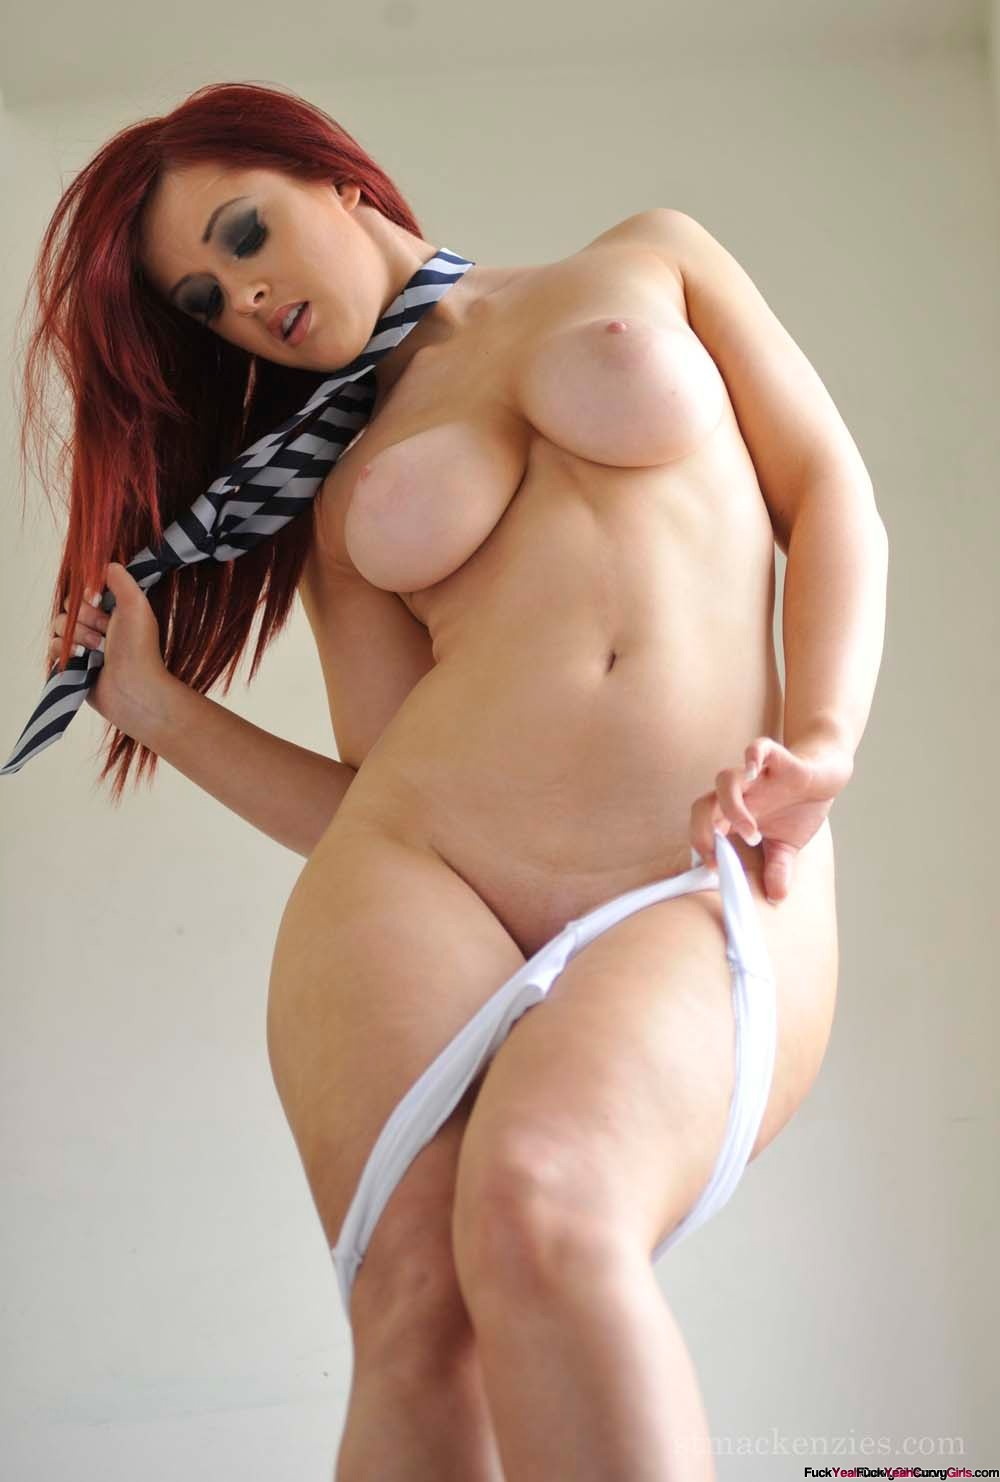 From Redhead sexy latina pornstar very pity